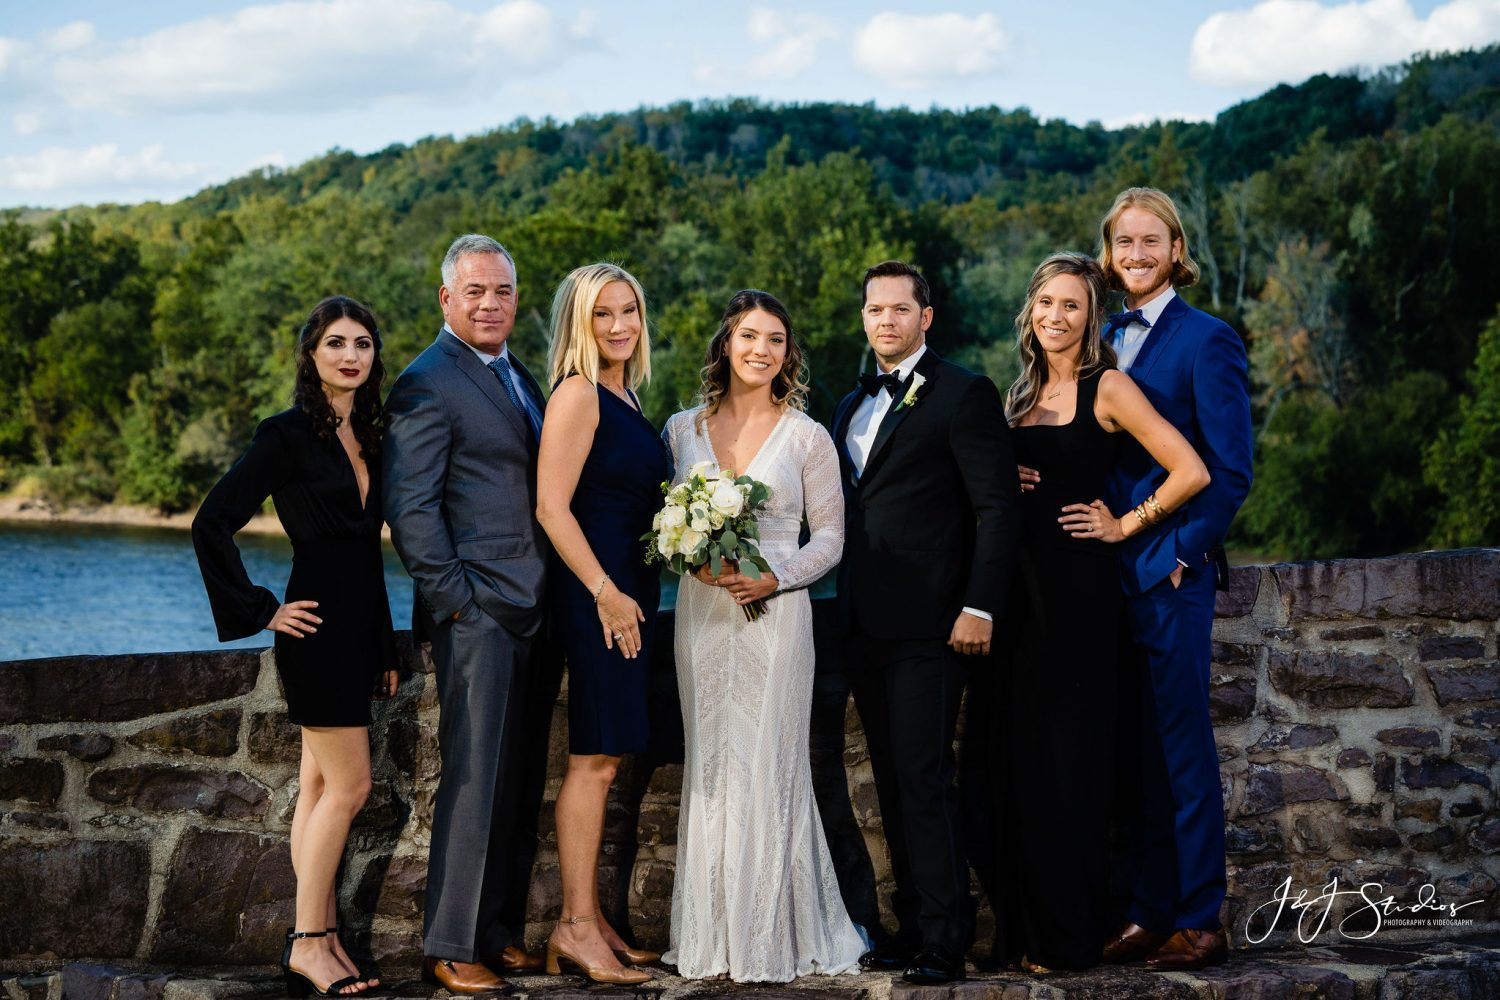 family portrait wedding photography timeline guidelines